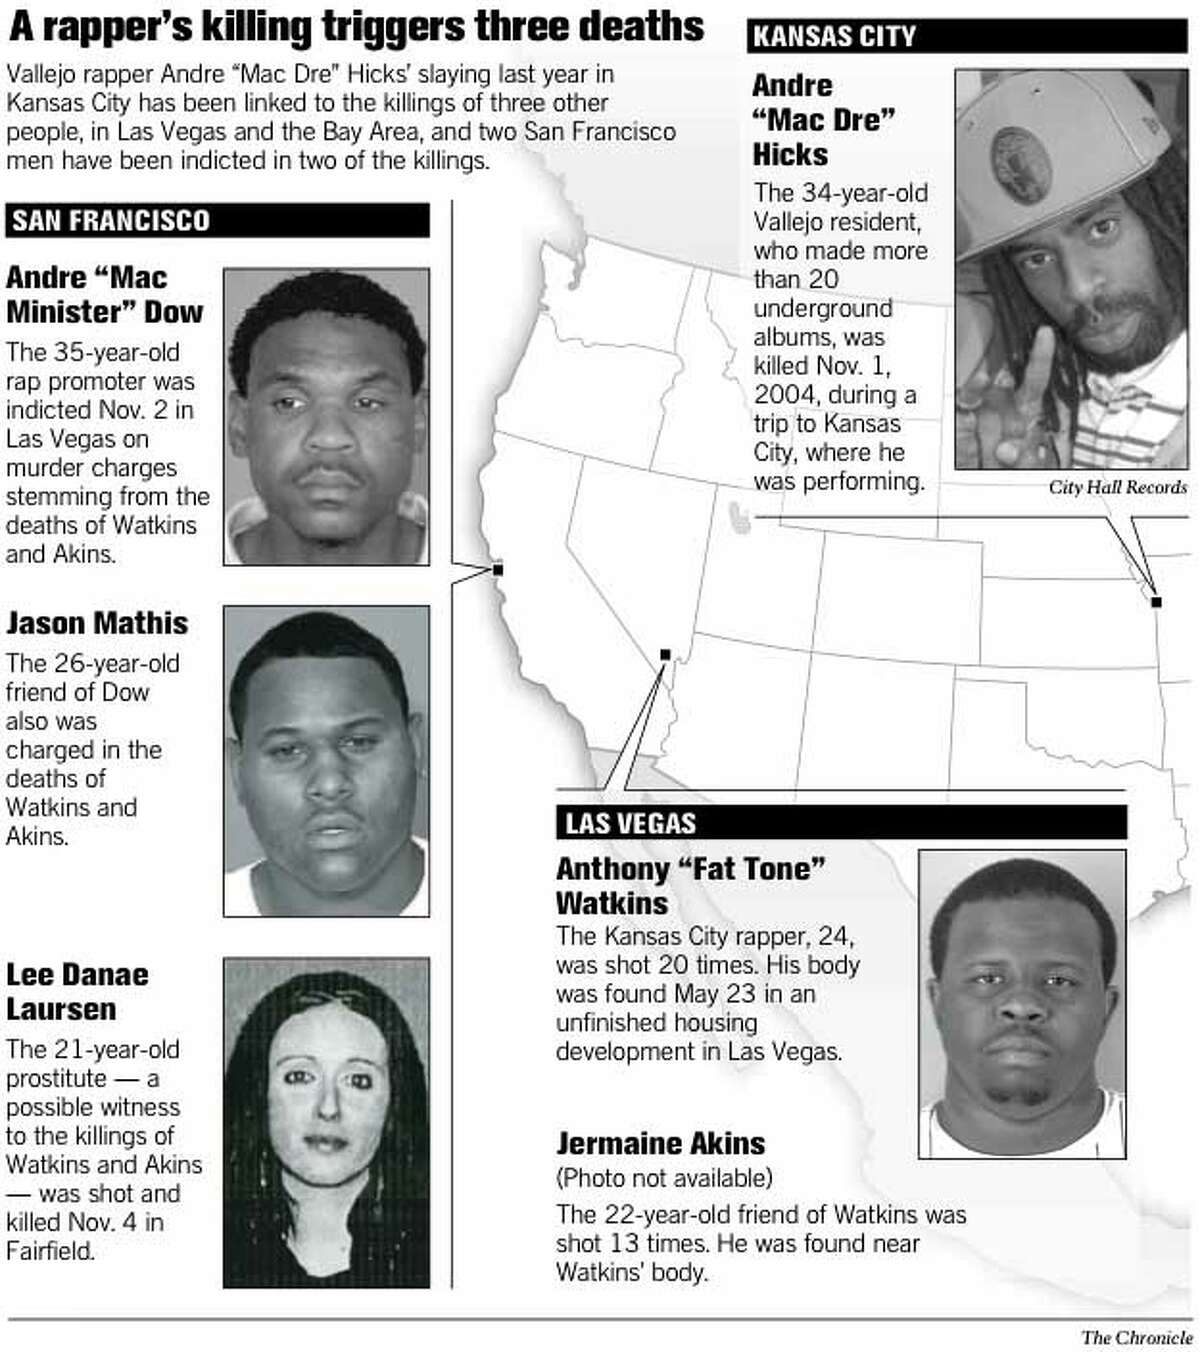 A Rapper's Killing Triggers Three Deaths. Chronicle Graphic